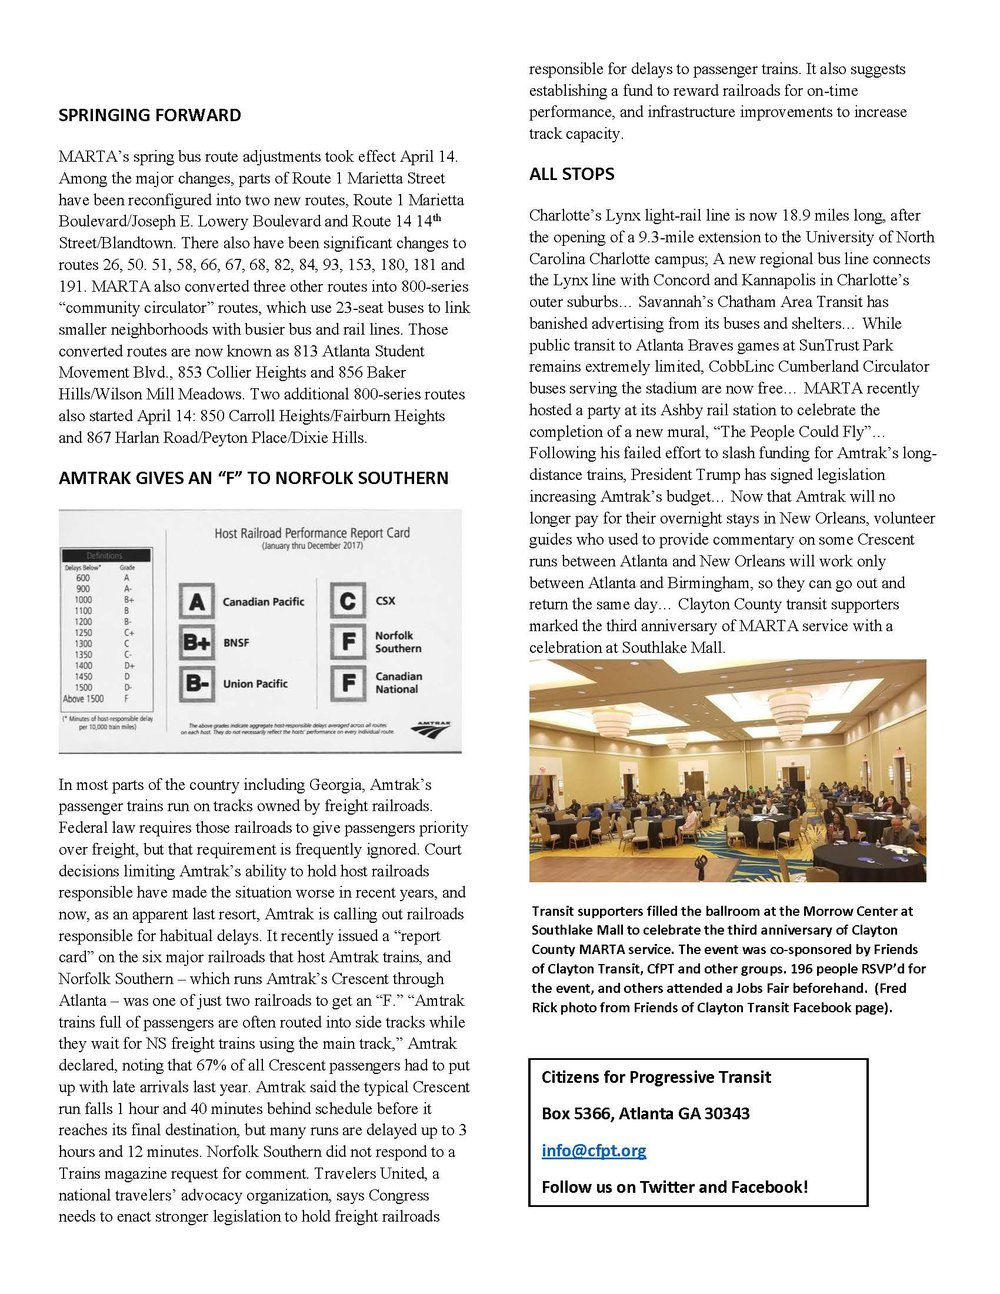 2018-04 CfPT newsletter_Page_3.jpg